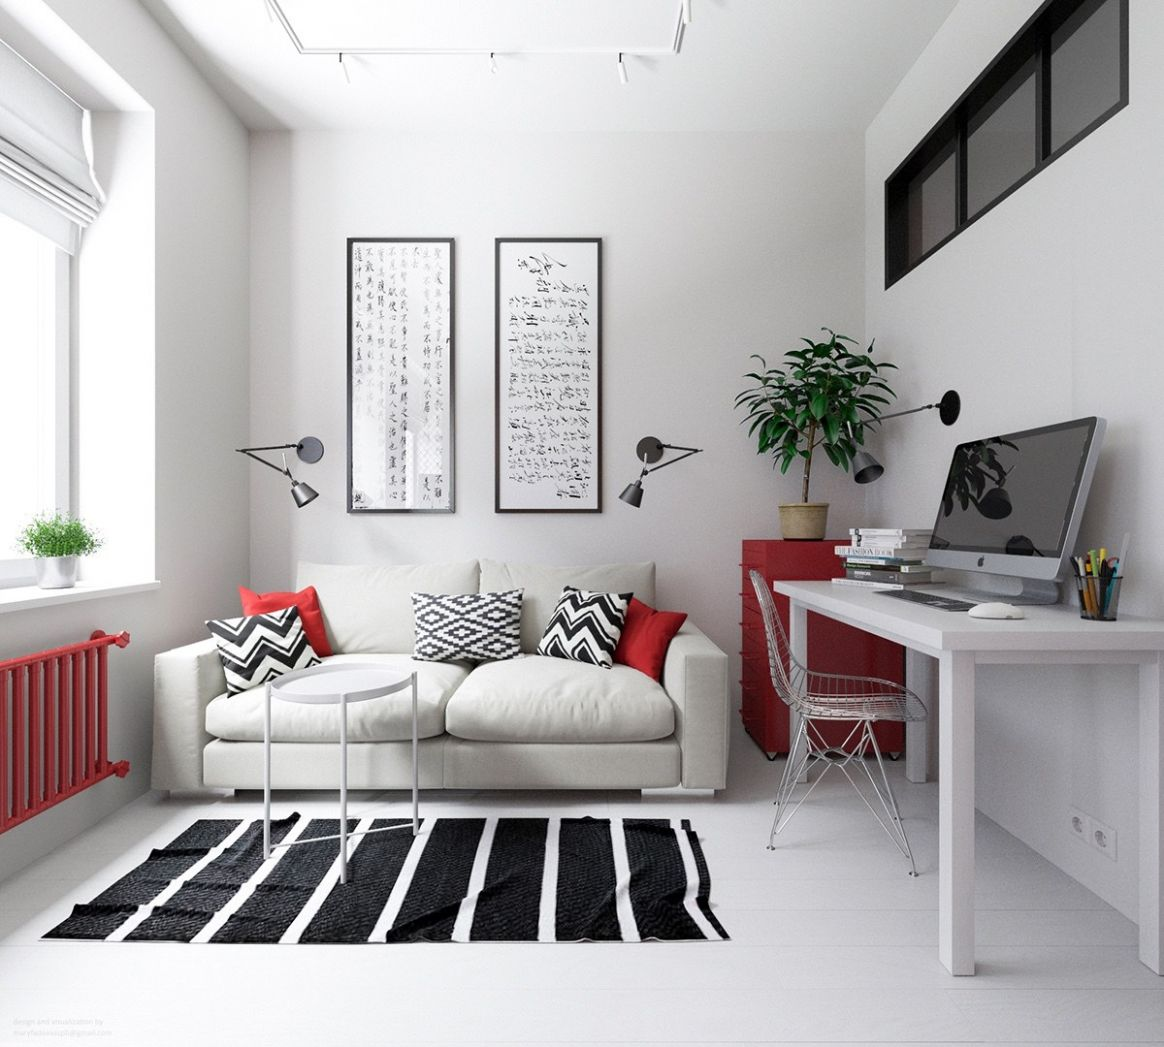 10 Small Apartments That Rock Uncommon Color Schemes [With Floor Plans]